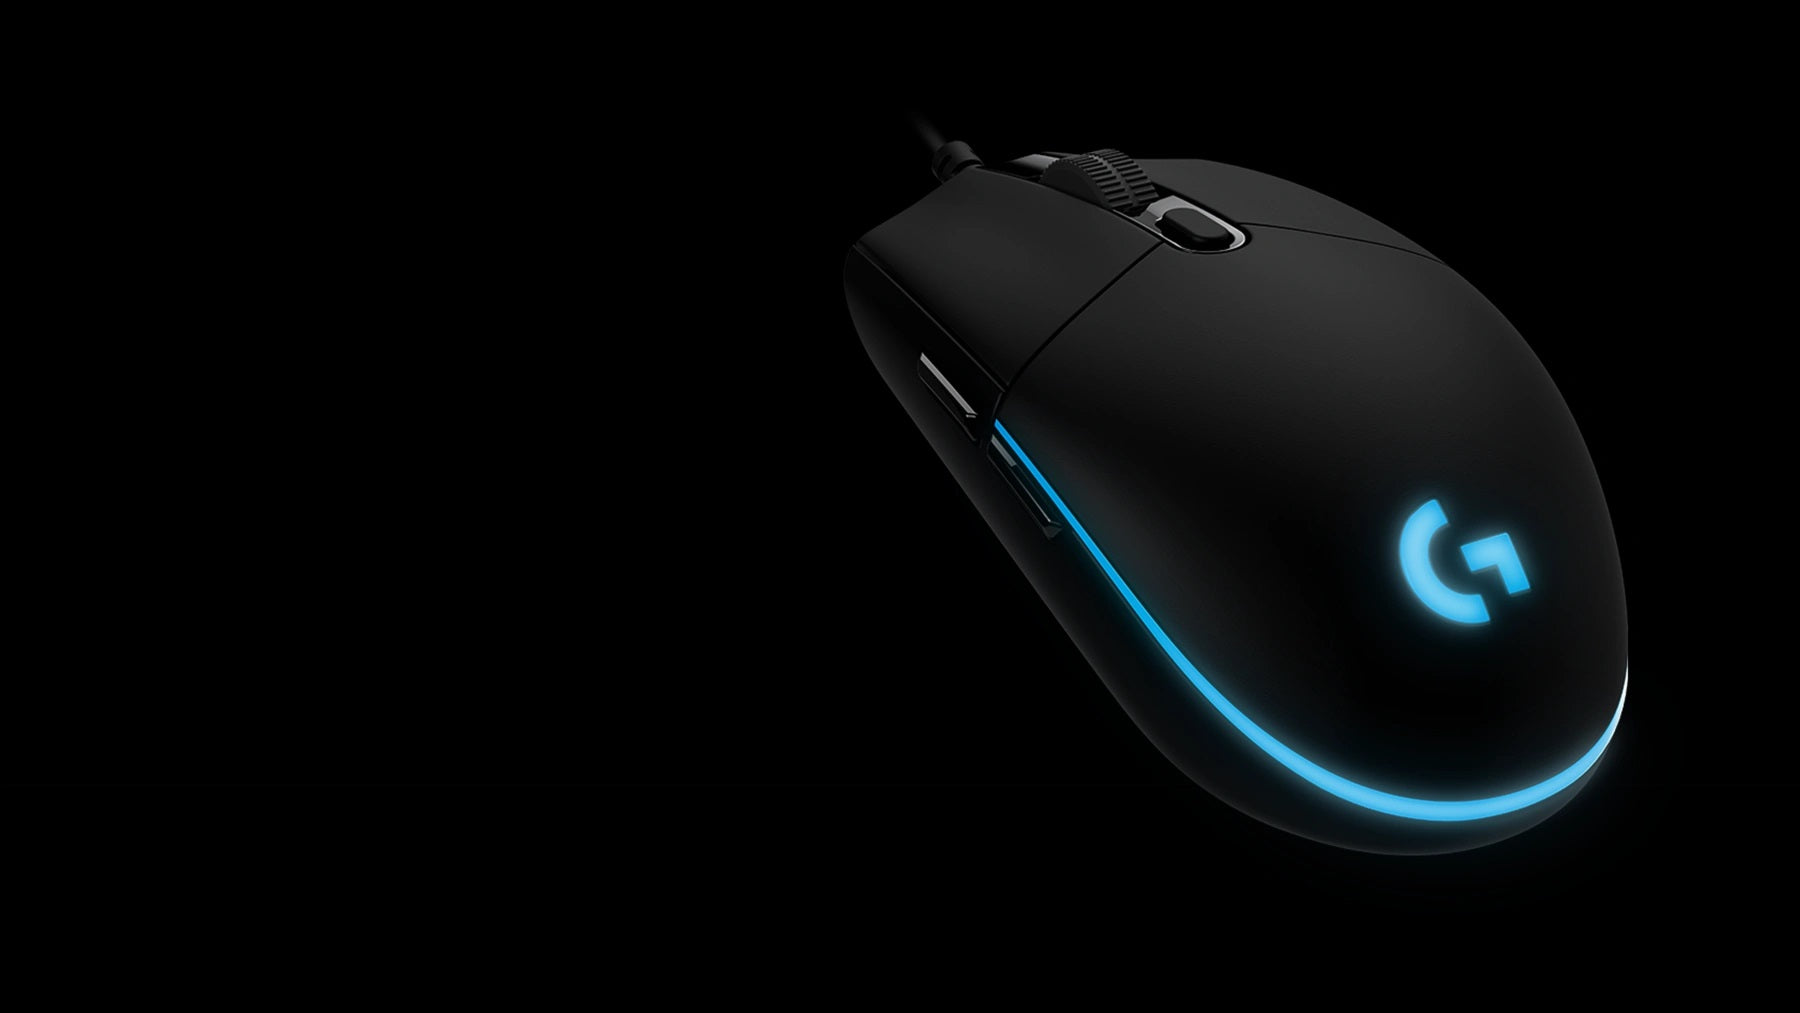 LIGHTSYNC RGB - PRO Mouse comes complete with ~16.8M color customization perfect for representing your team colors, personalizing your setup, or synchronizing with other G products. LIGHTSYNC also features game-driven lighting effects that respond to in-game action, audio visualization, screen color sampling and more. Program it all with G HUB.